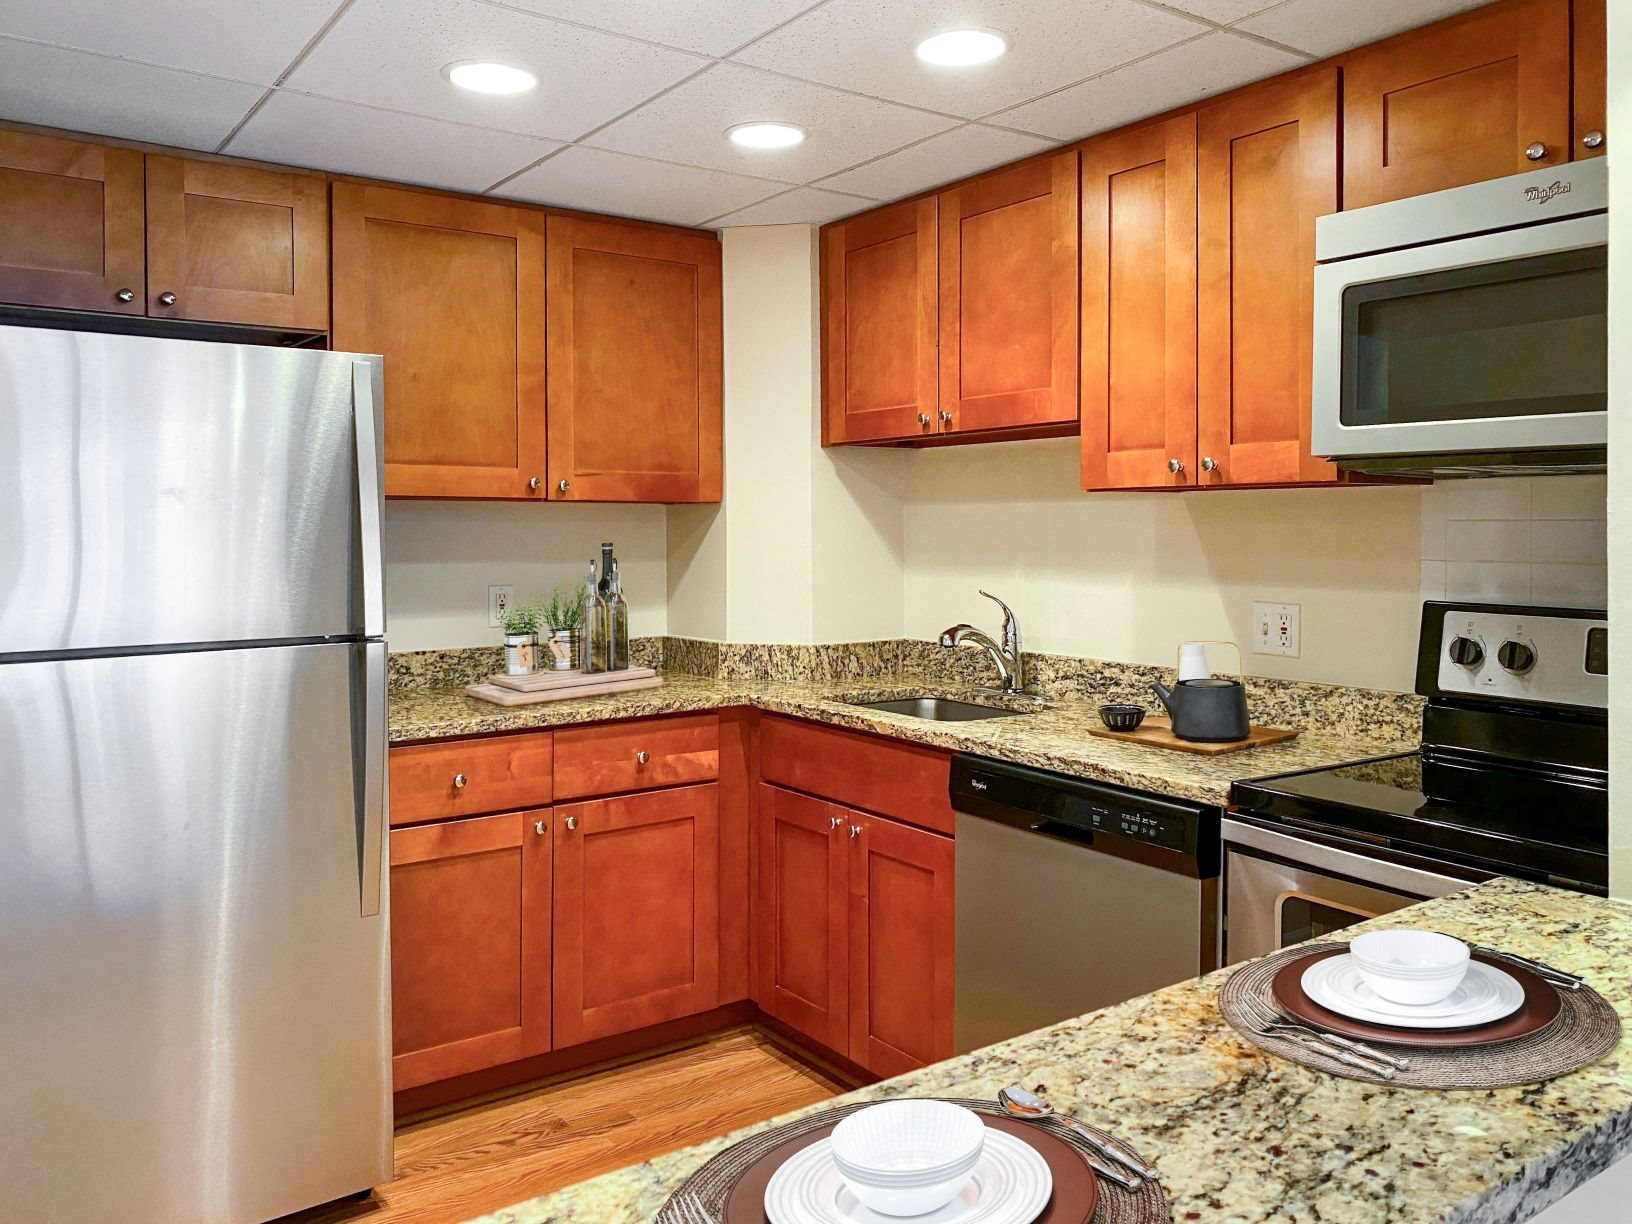 Renovated kitchen at Lenox Club in Crystal City with wood cabinets, granite countertops, stainless steel appliances